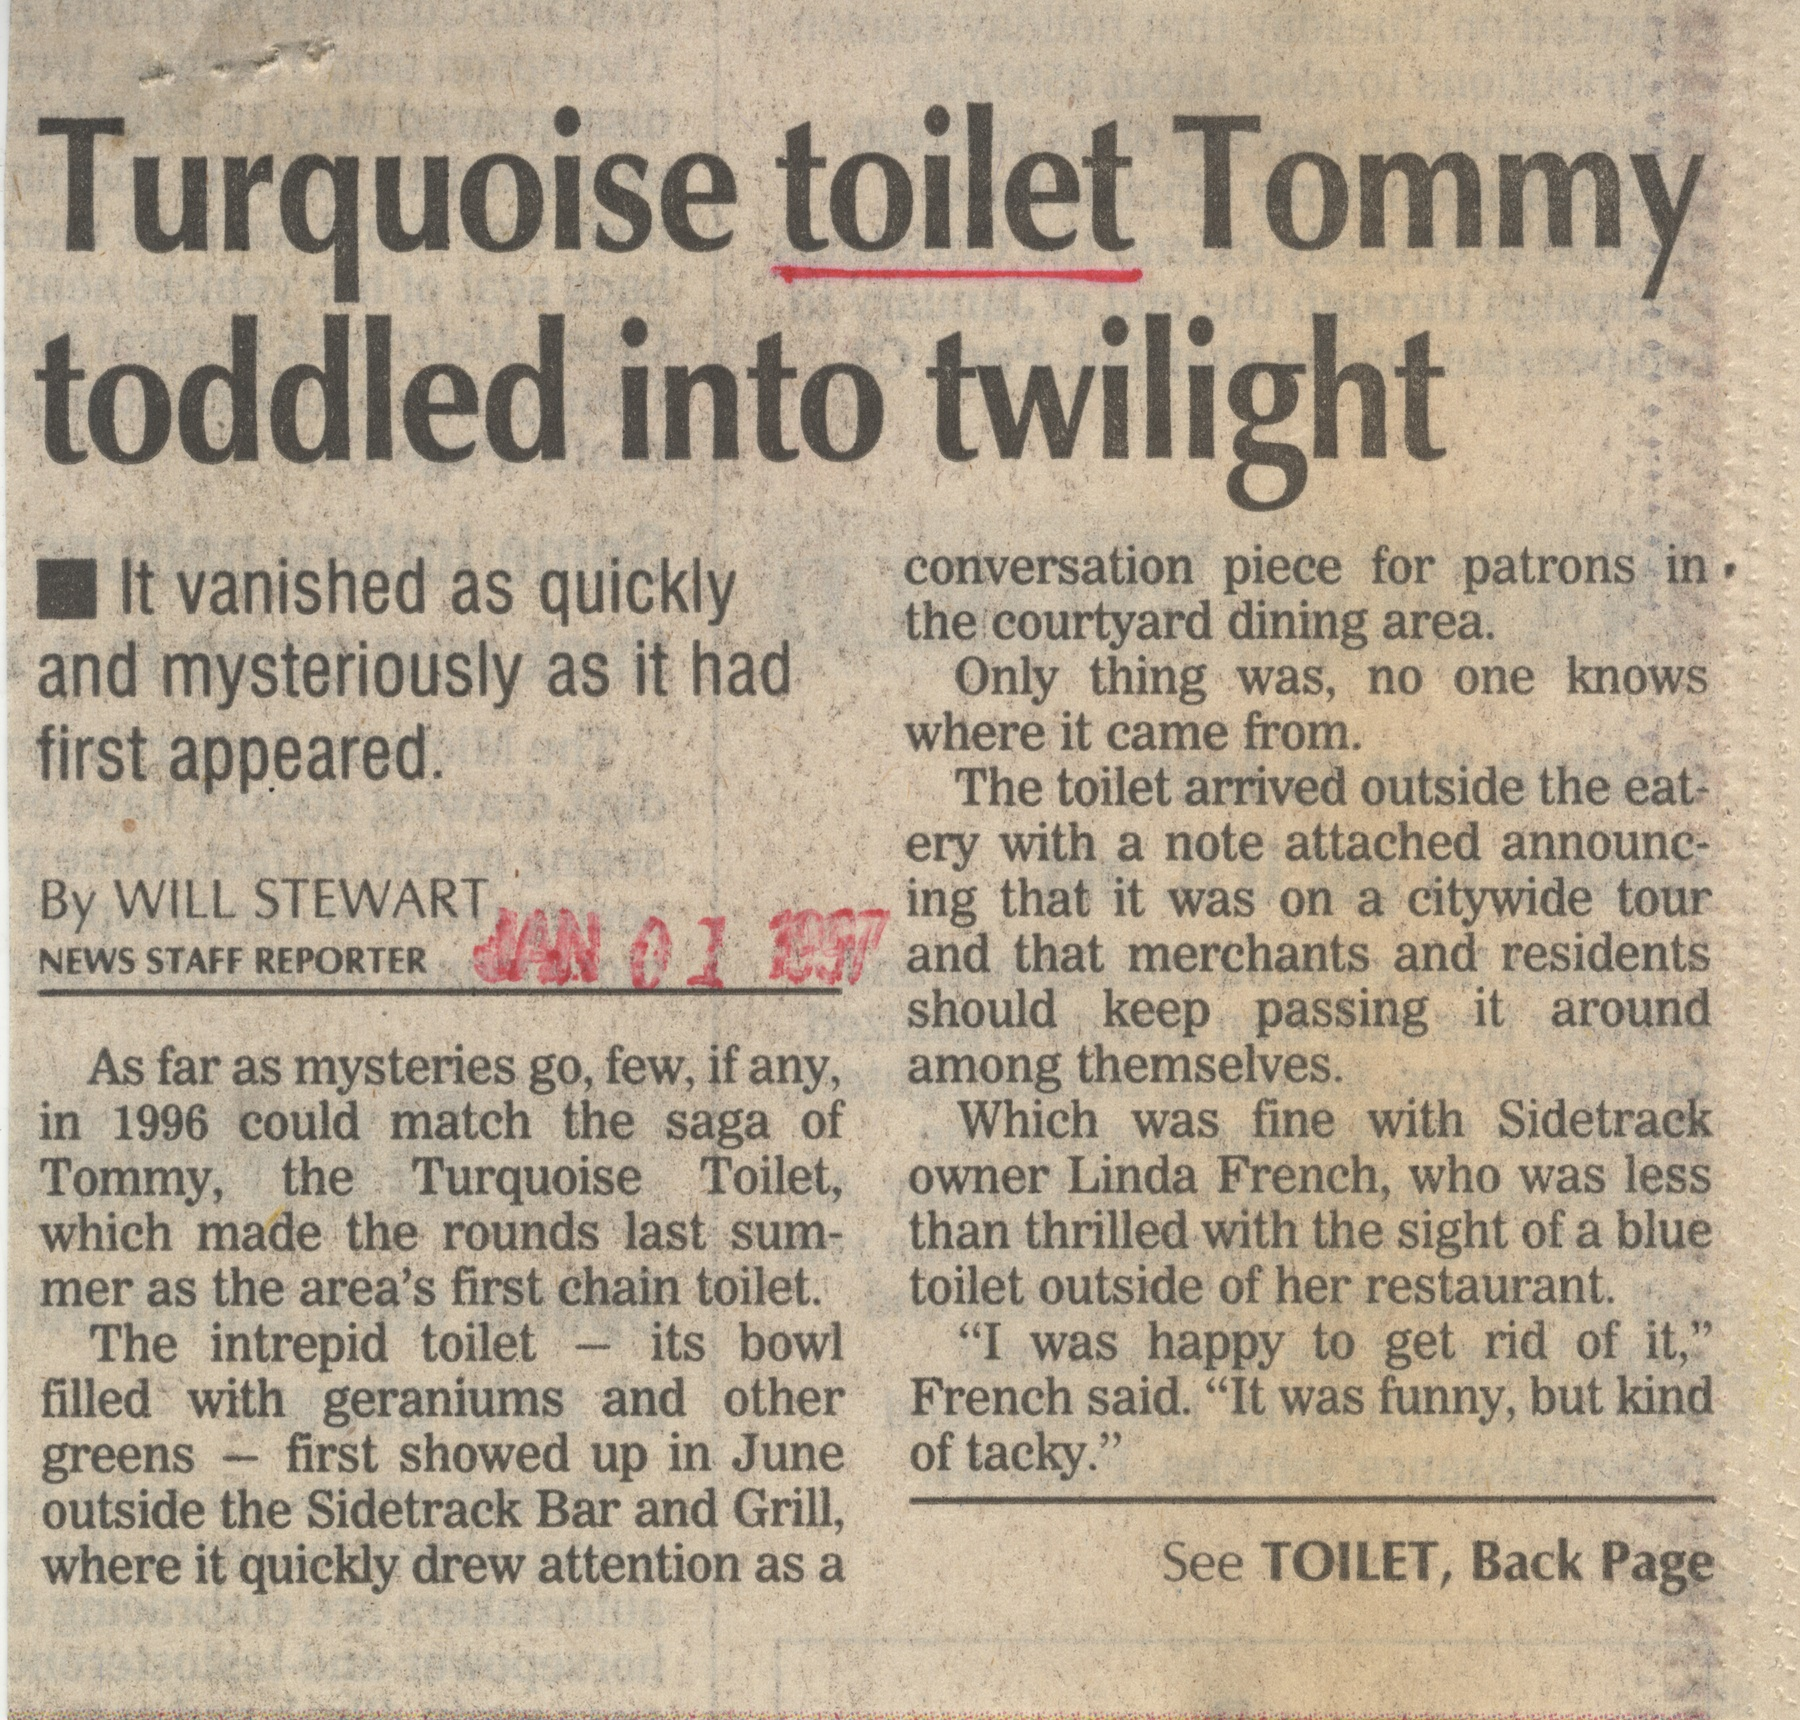 Tuquise Toilet Tommy Toddles Into Twilight image